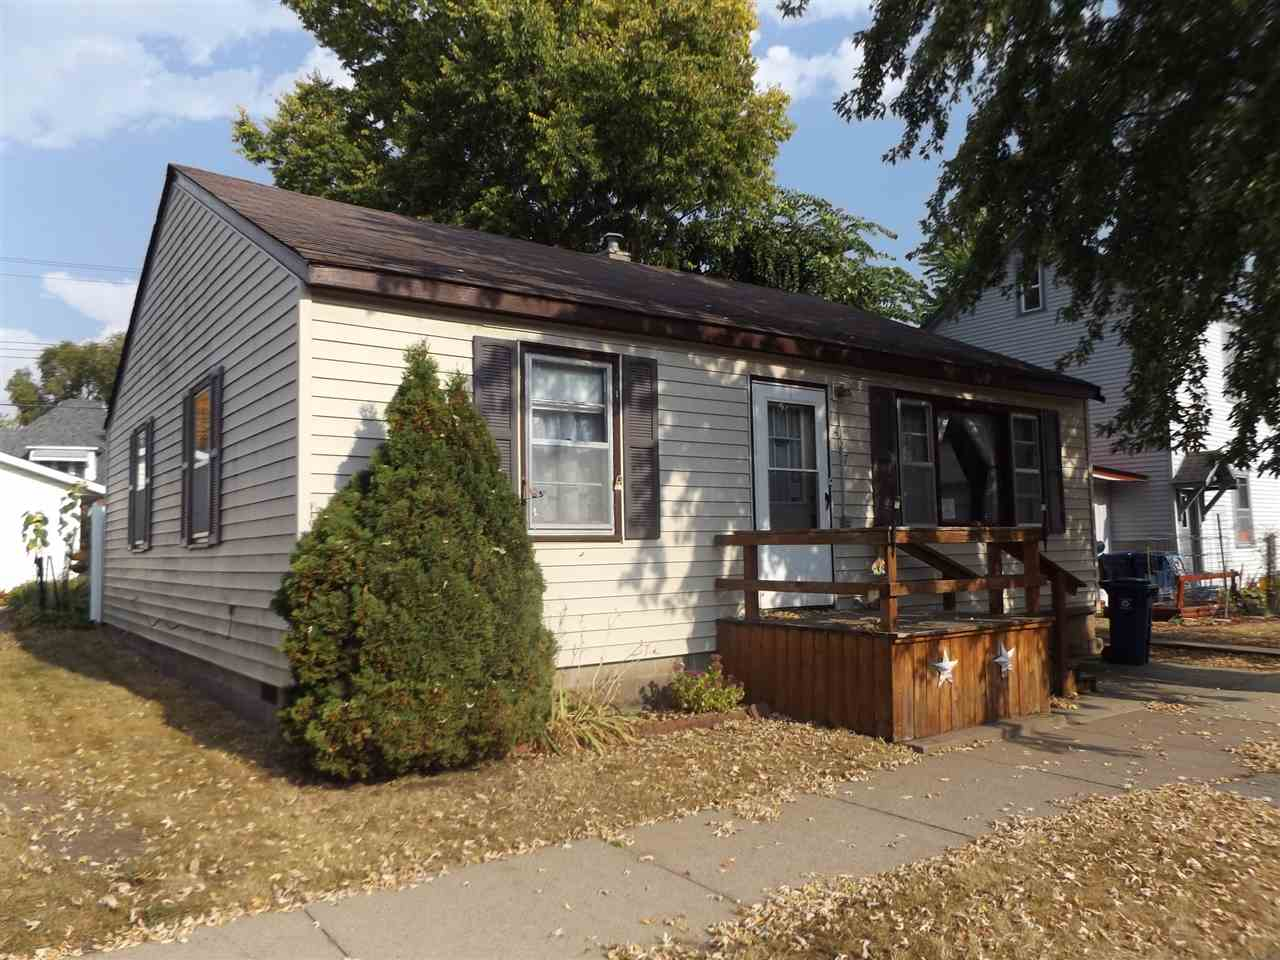 427 S 2nd St, Other, IA 52052